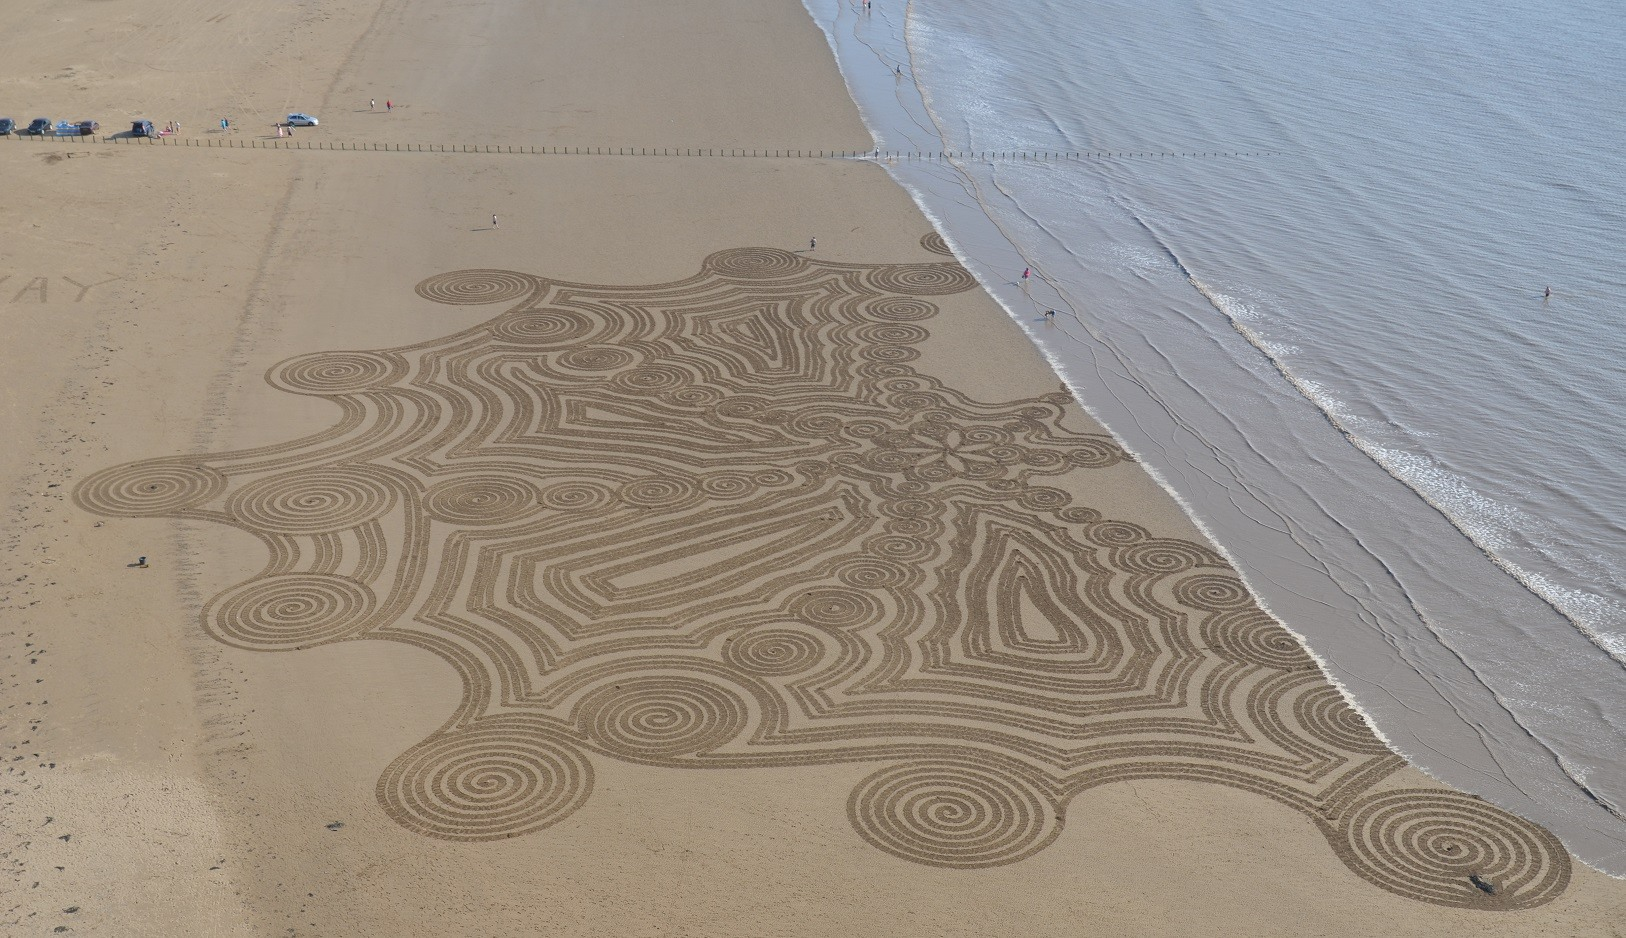 Simon Beck also does sand art in the summer months – Loaded